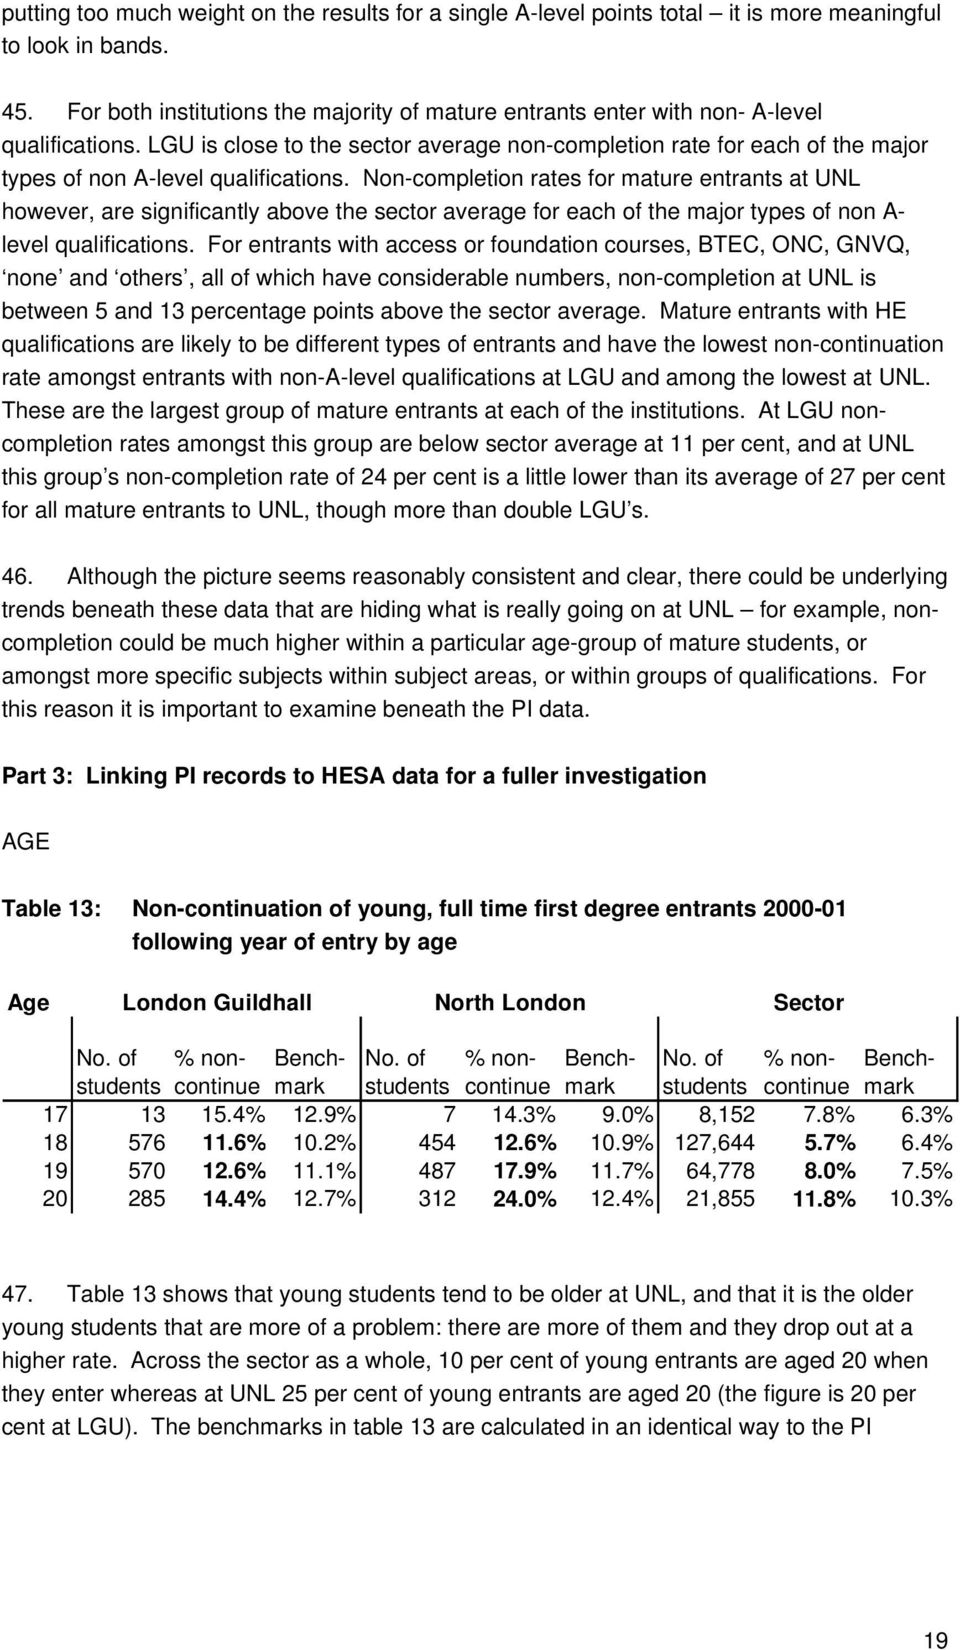 LGU is close to the sector average non-completion rate for each of the major types of non A-level qualifications.